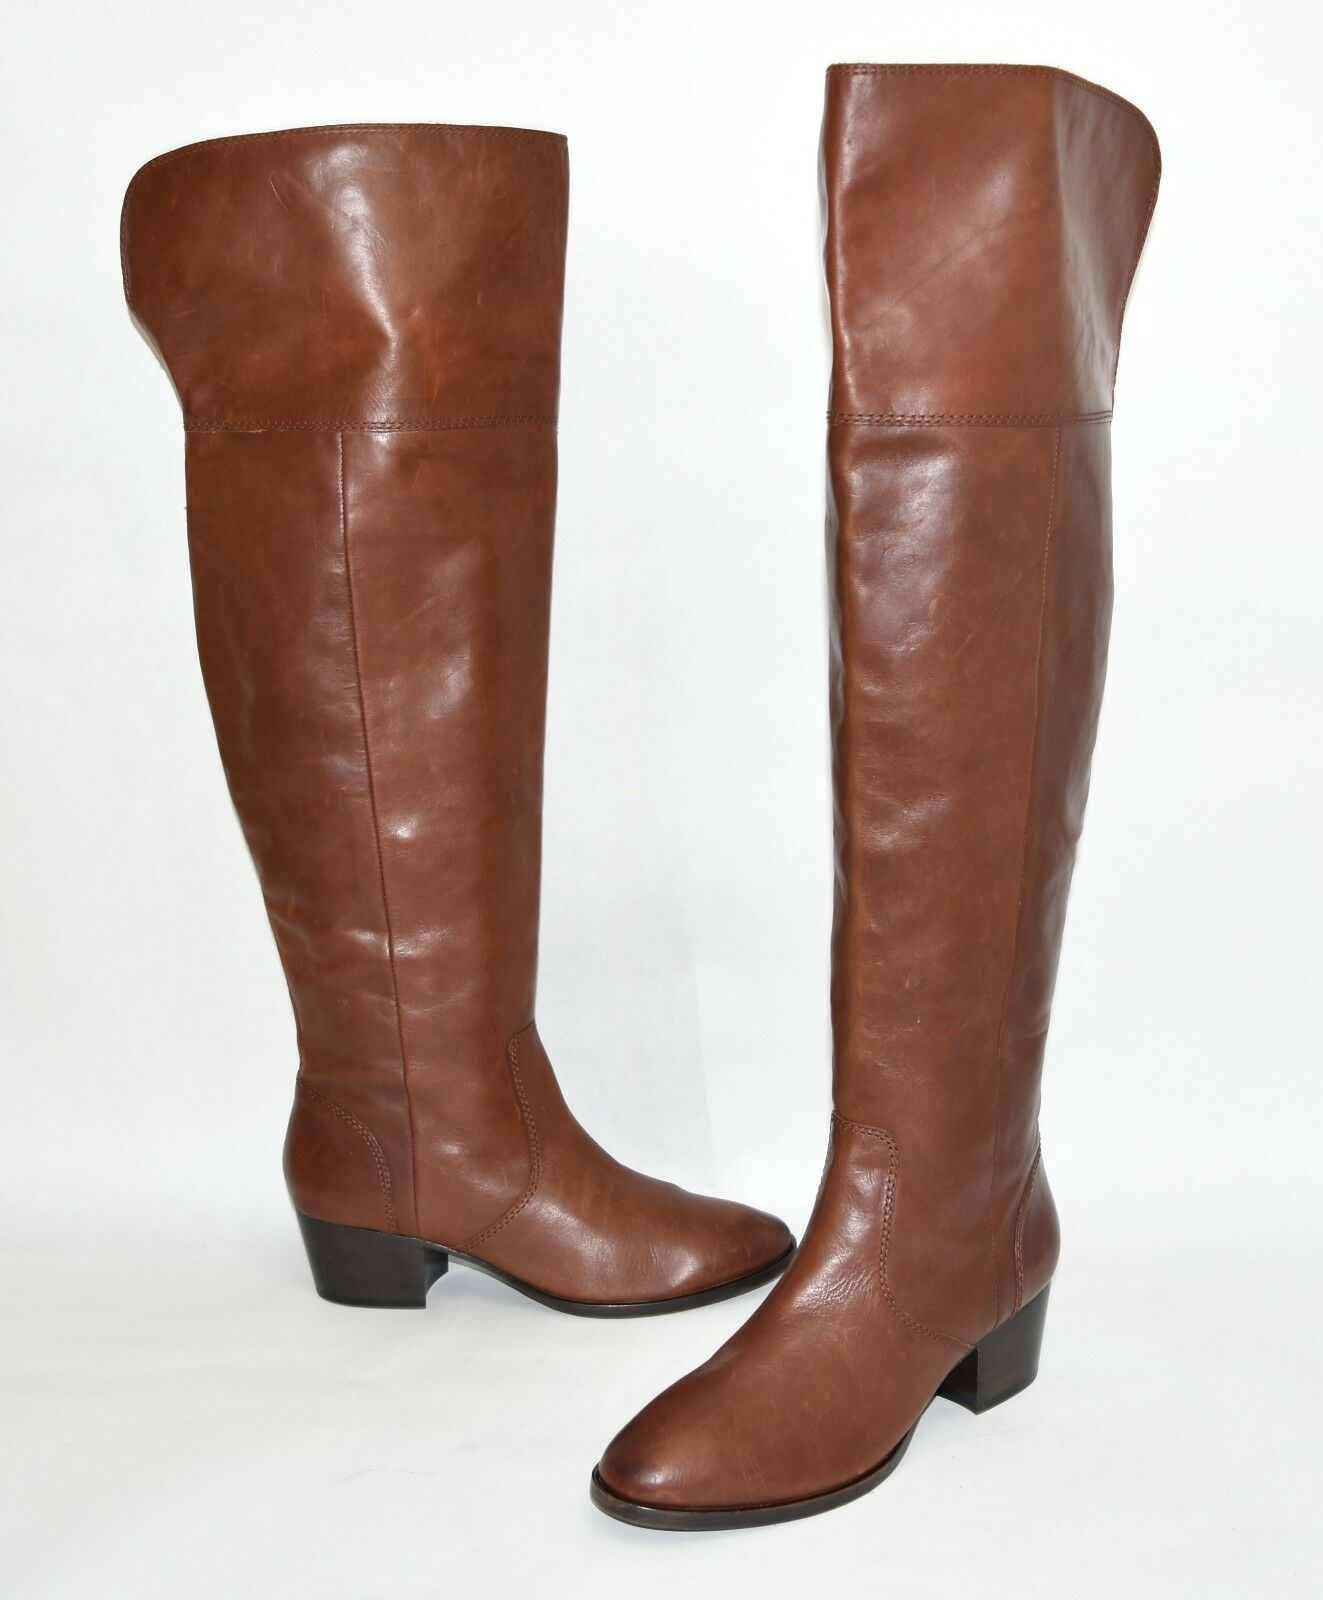 New Frye Clara Over the Knee Boot Cognac EXT Wide Calf Leather 3475371 Size 8.5